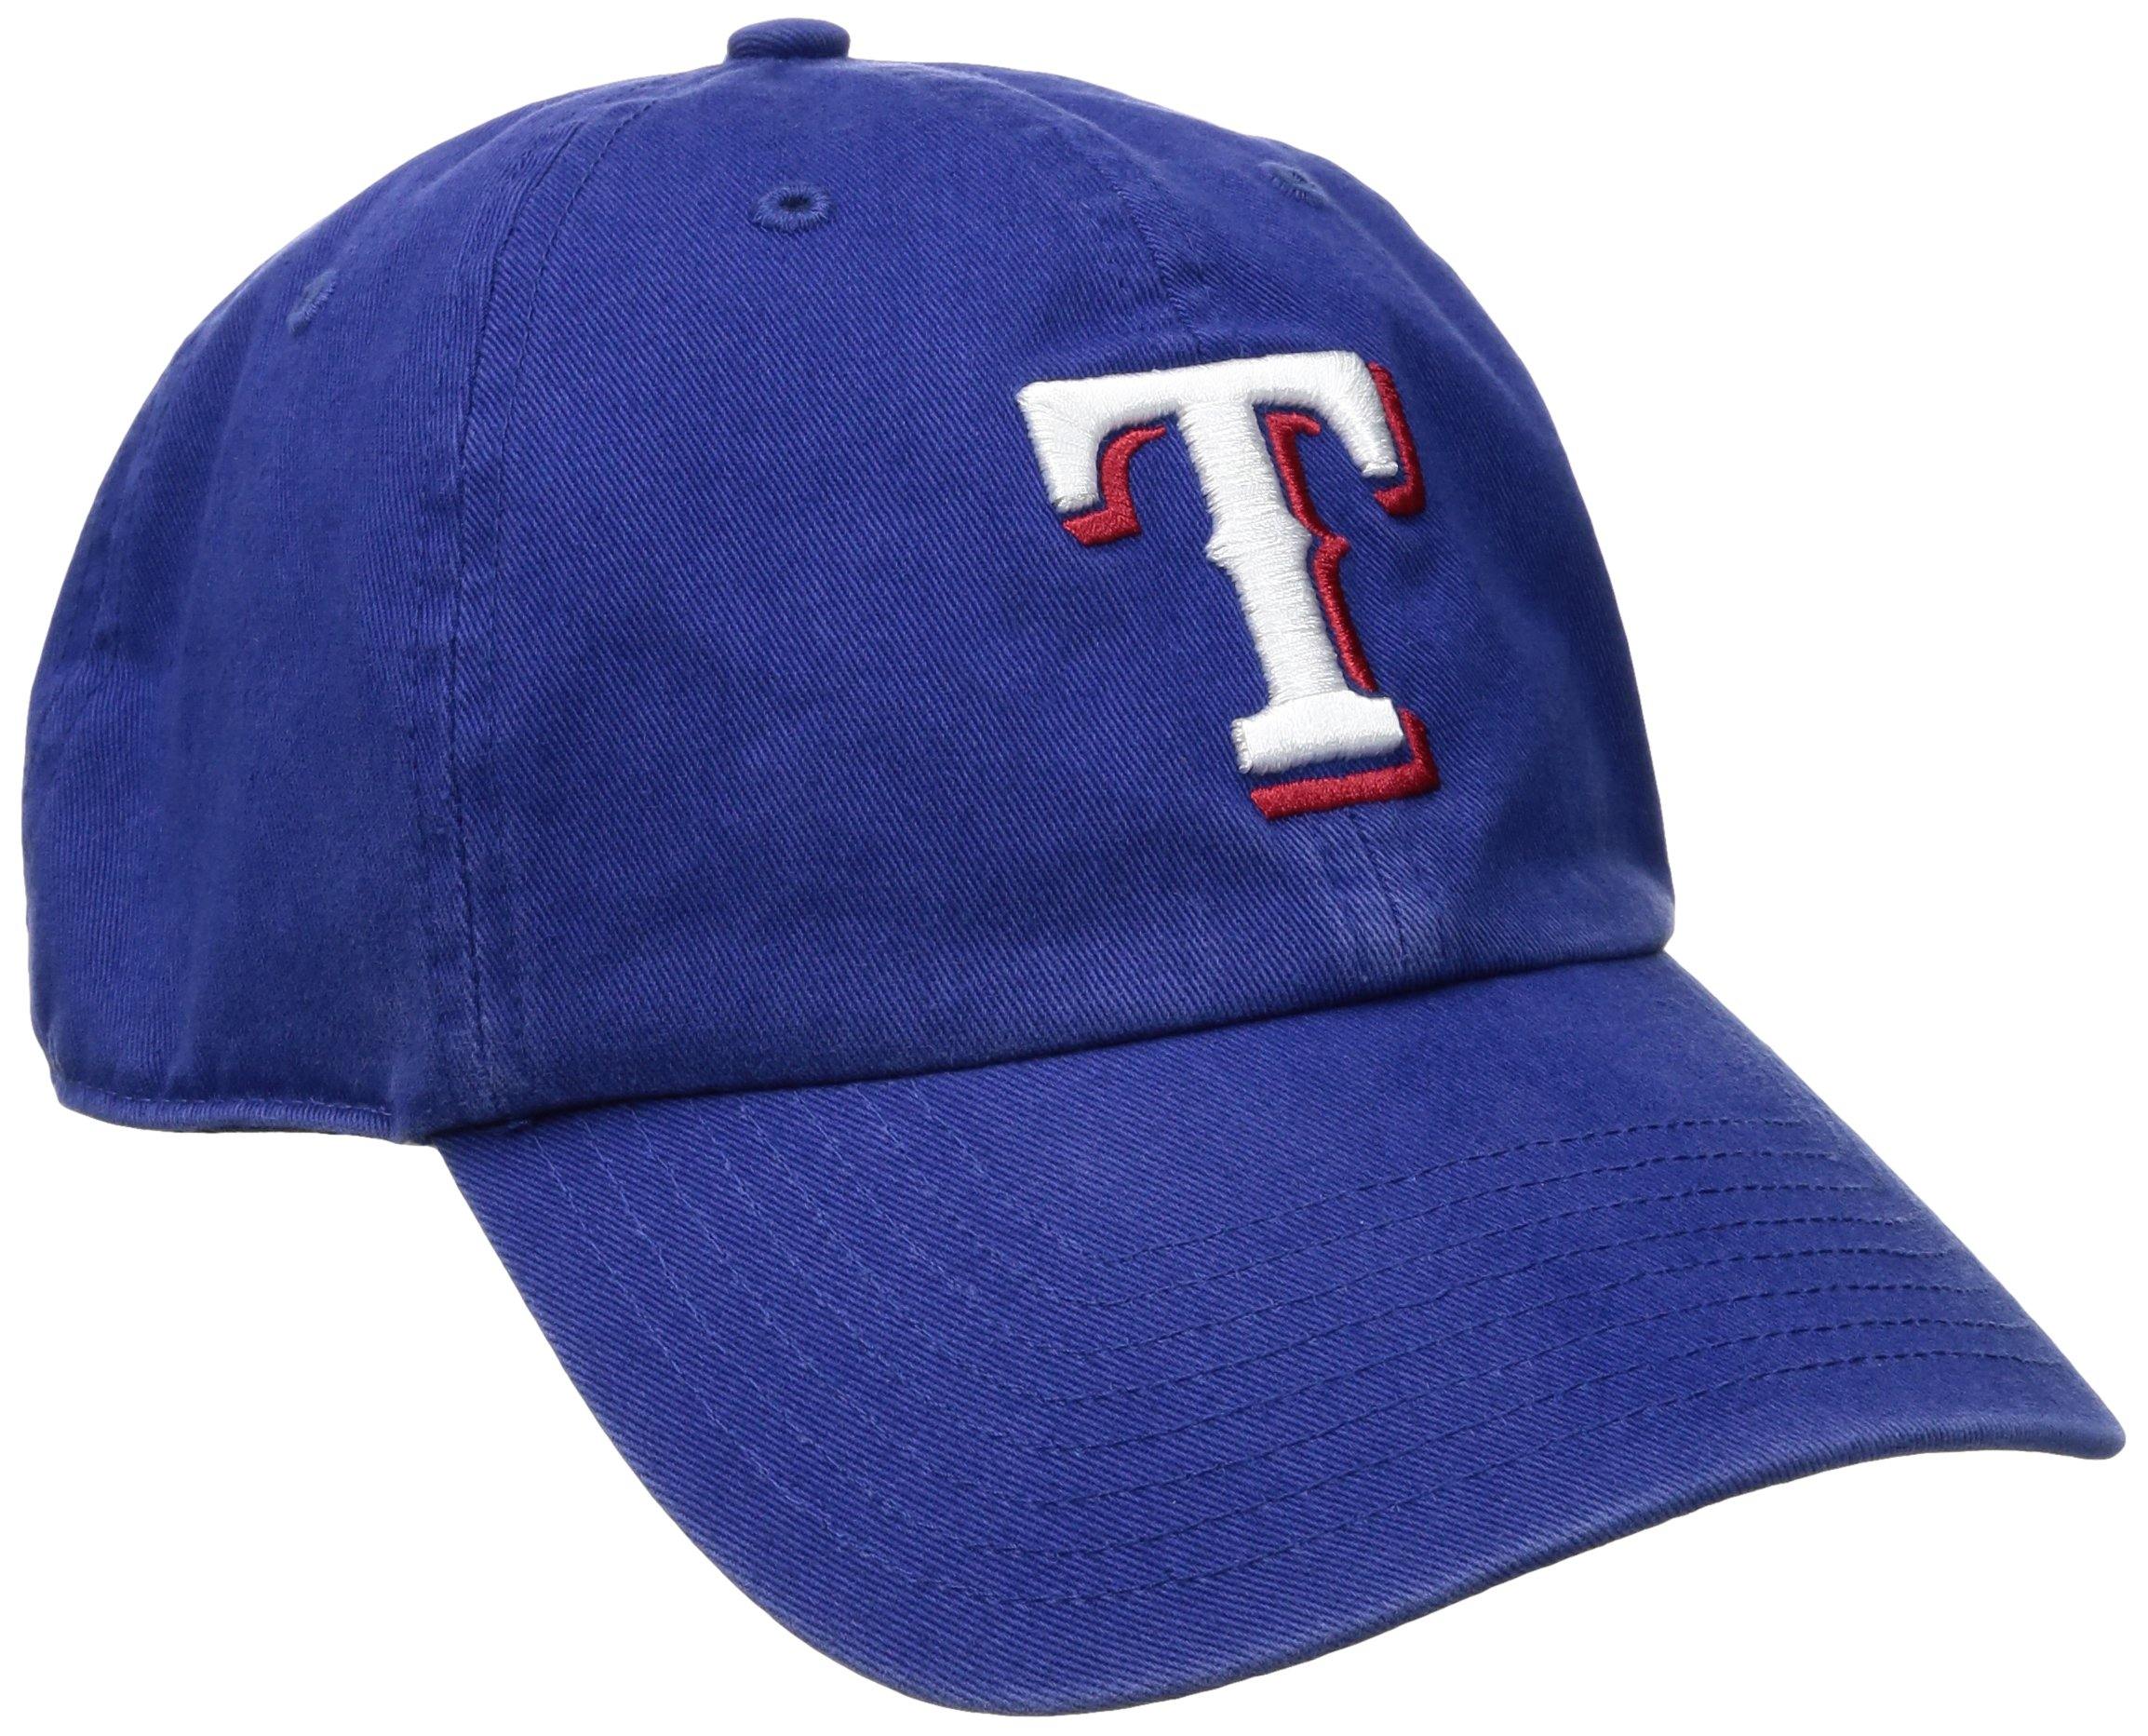 low cost 80ffa ed013 ... uk mlb 47 clean up adjustable hat adult 3023e 9e668